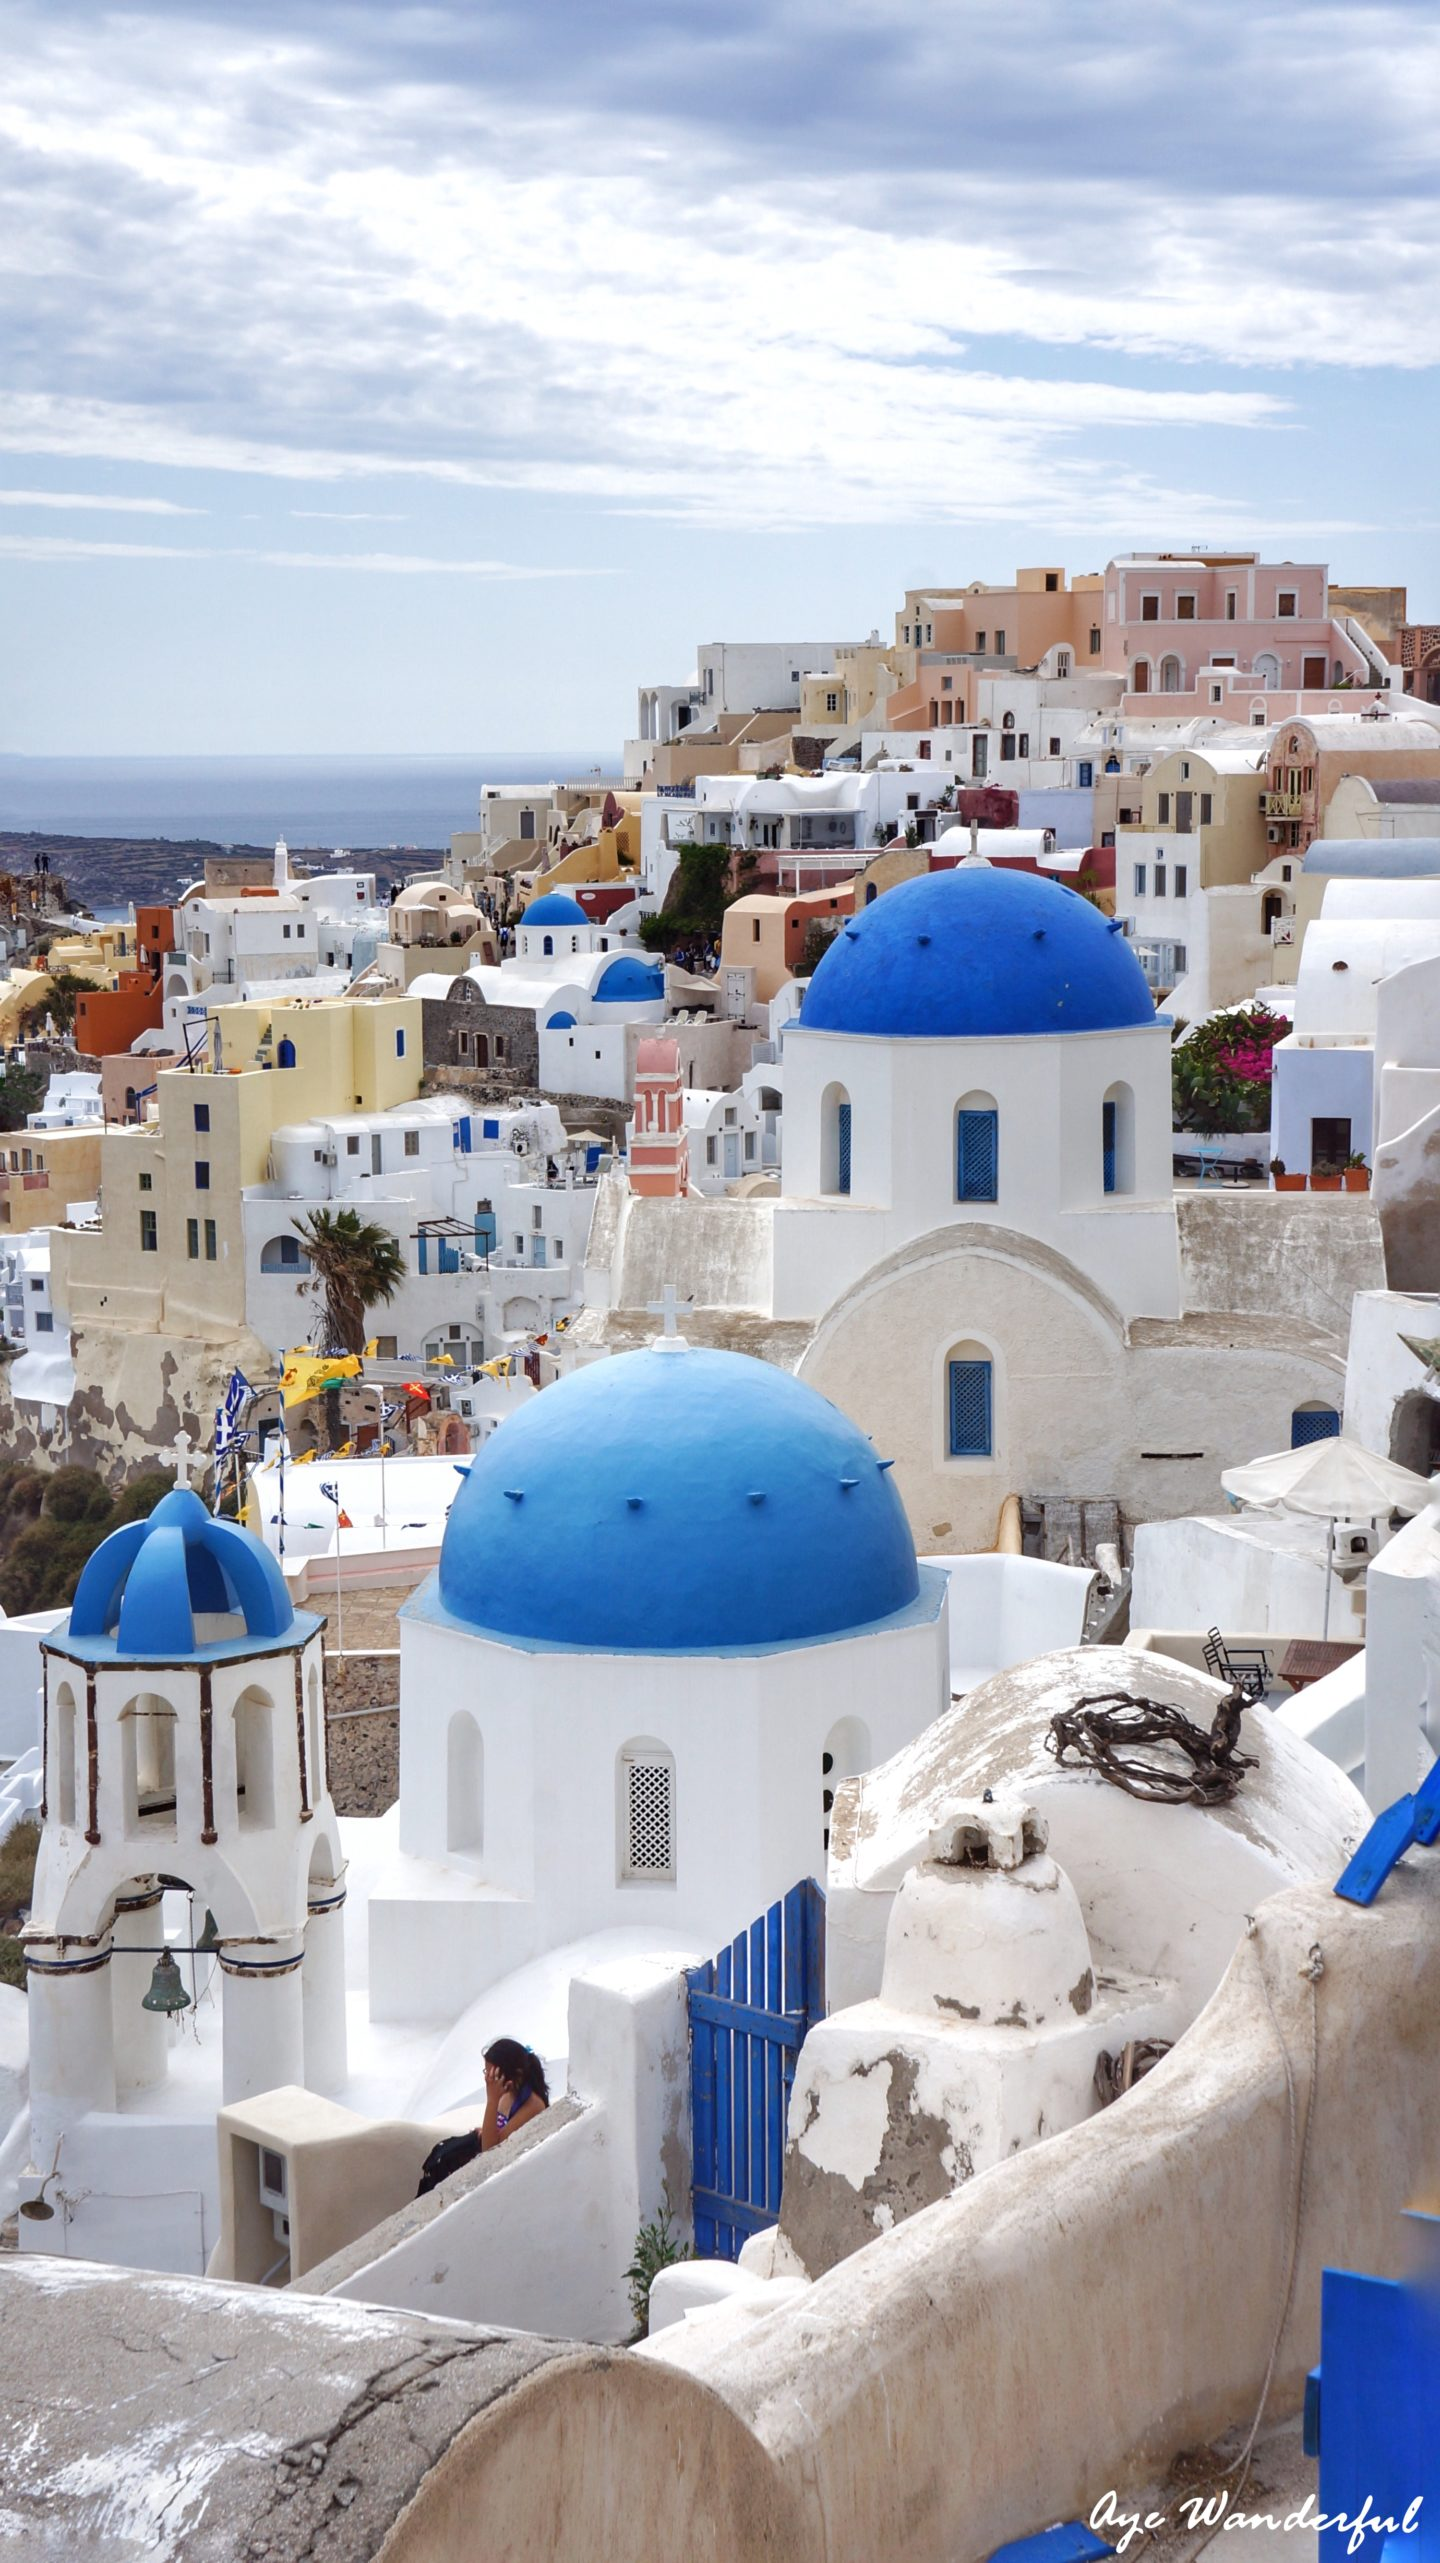 10 Photos that will make you want to visit Santorini | Santorini Photo Diary | Read more on www.ayewanderful.com